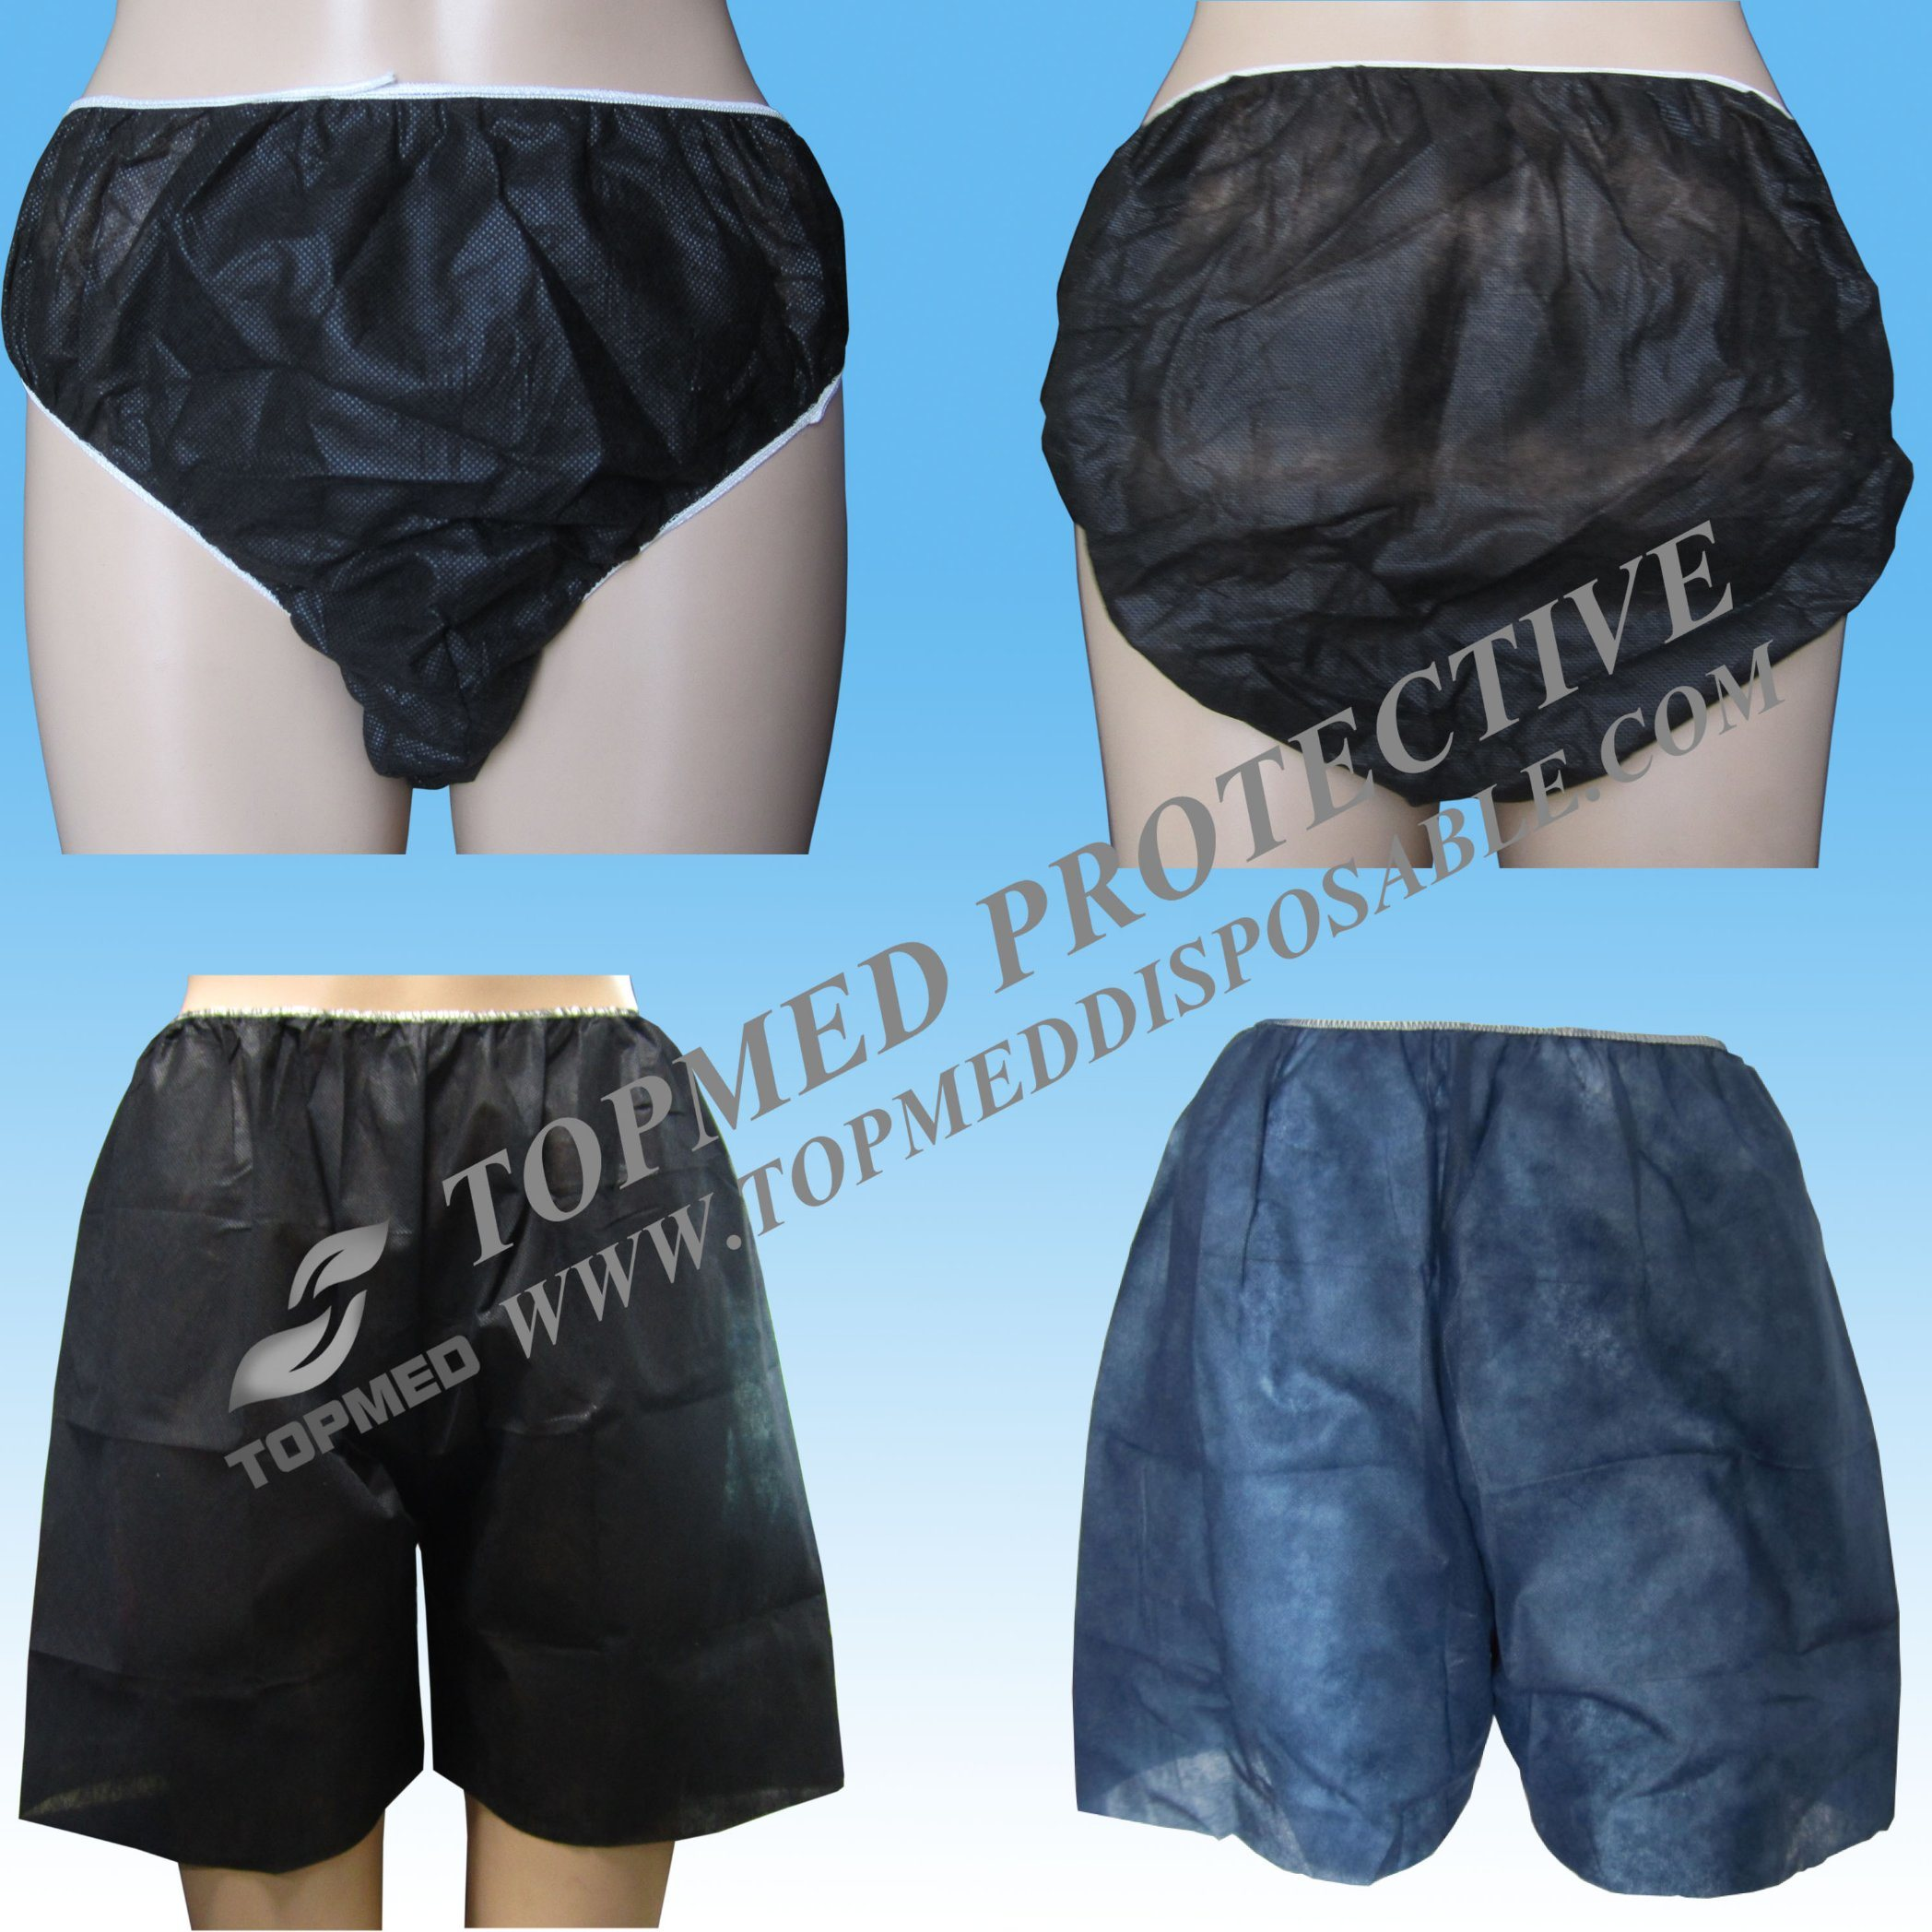 Disposable Shorts for SPA Beauty Salon, Nonwoven Dispsoable Men′s Boxer Shorts